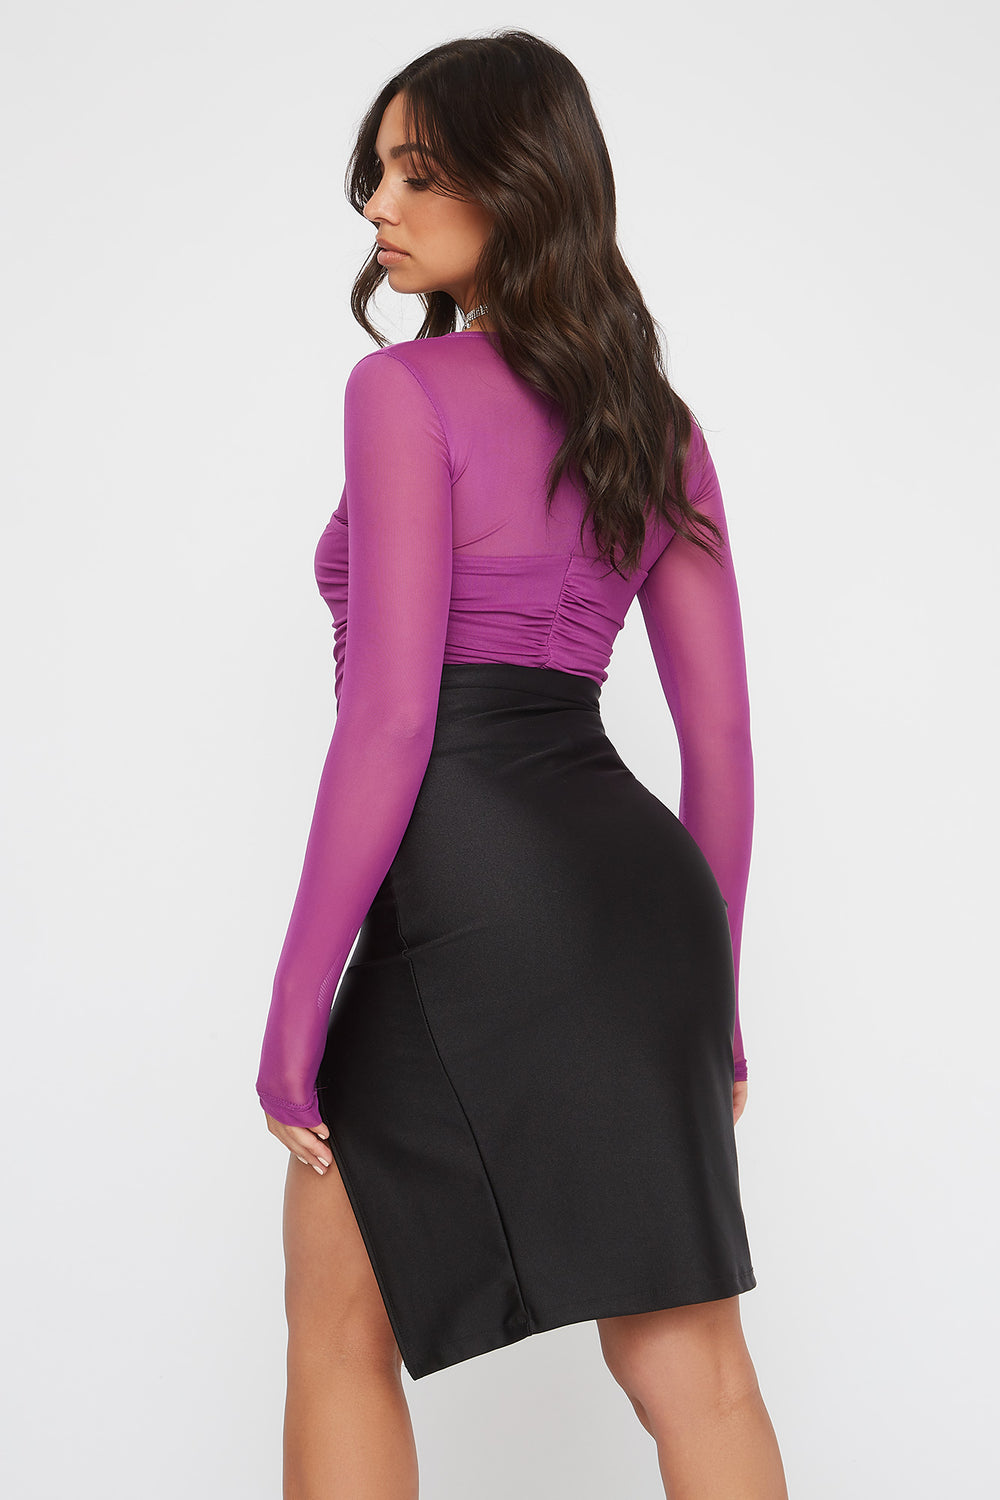 Ruched Mesh Square Neck Long Sleeve Purple